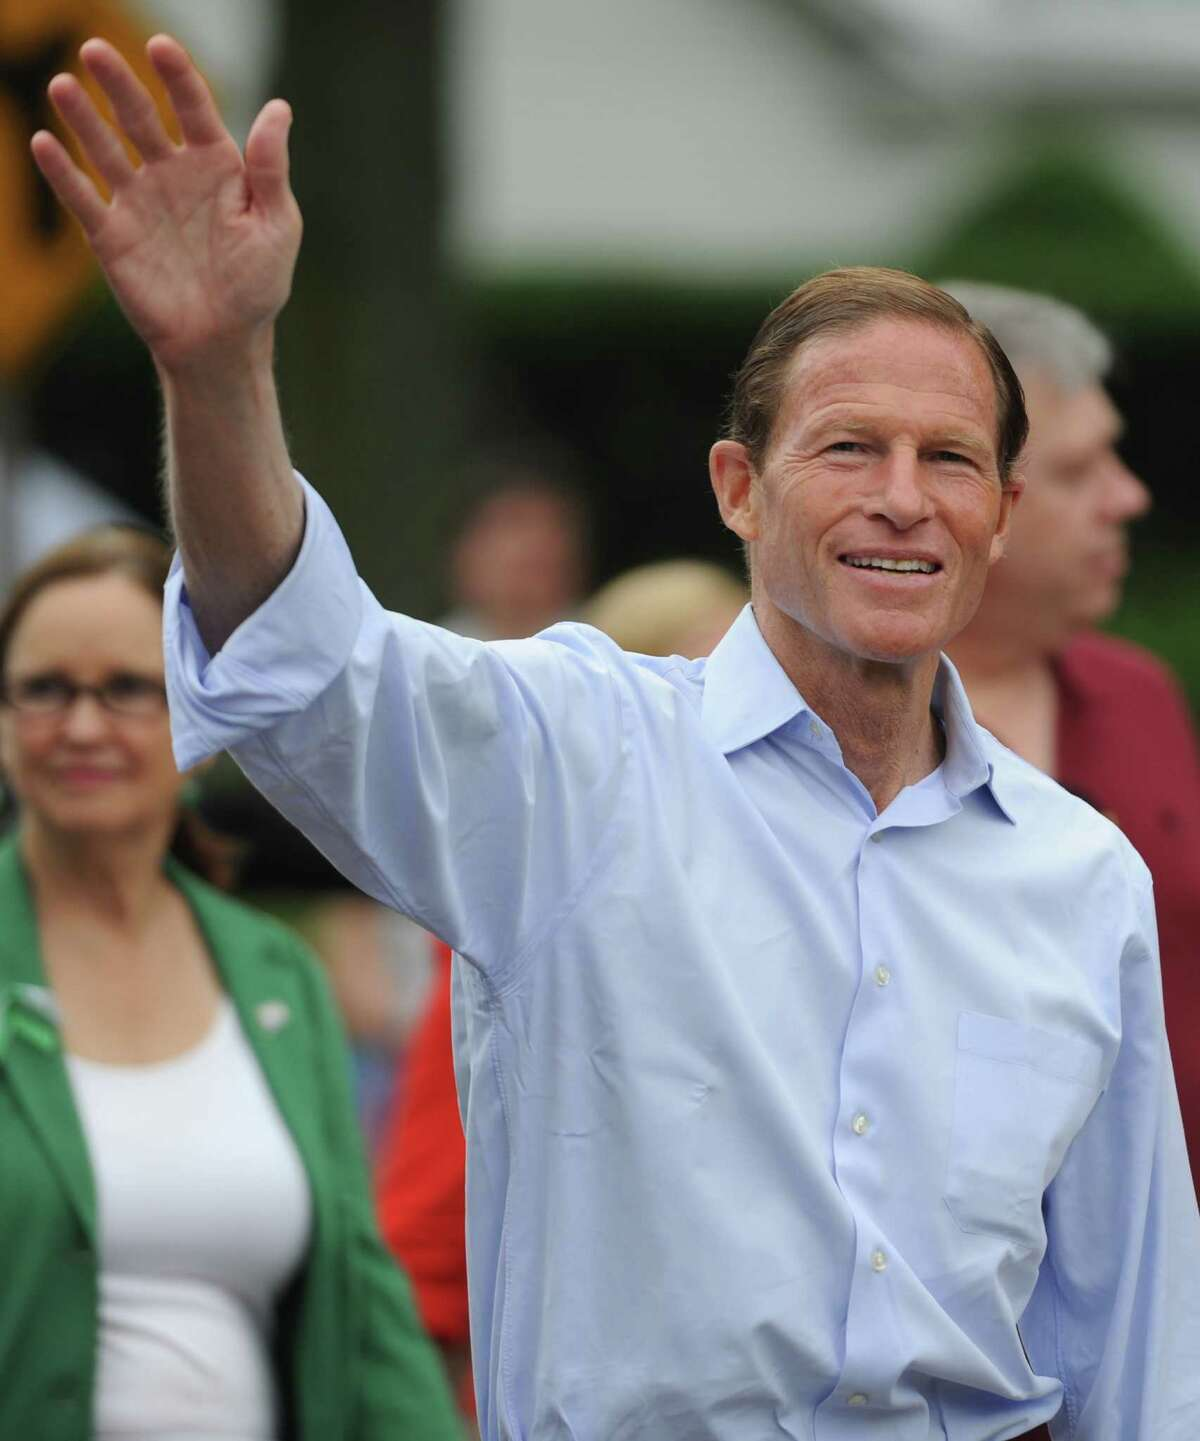 """U.S. Sen. Richard Blumenthal waves to the crowd while walking in the 52nd Annual Newtown Labor Day Parade in Newtown, Conn. on Monday, Sept. 2, 2013. About 100 floats and groups participated in the parade, themed """"We are Newtown - marching strong."""""""